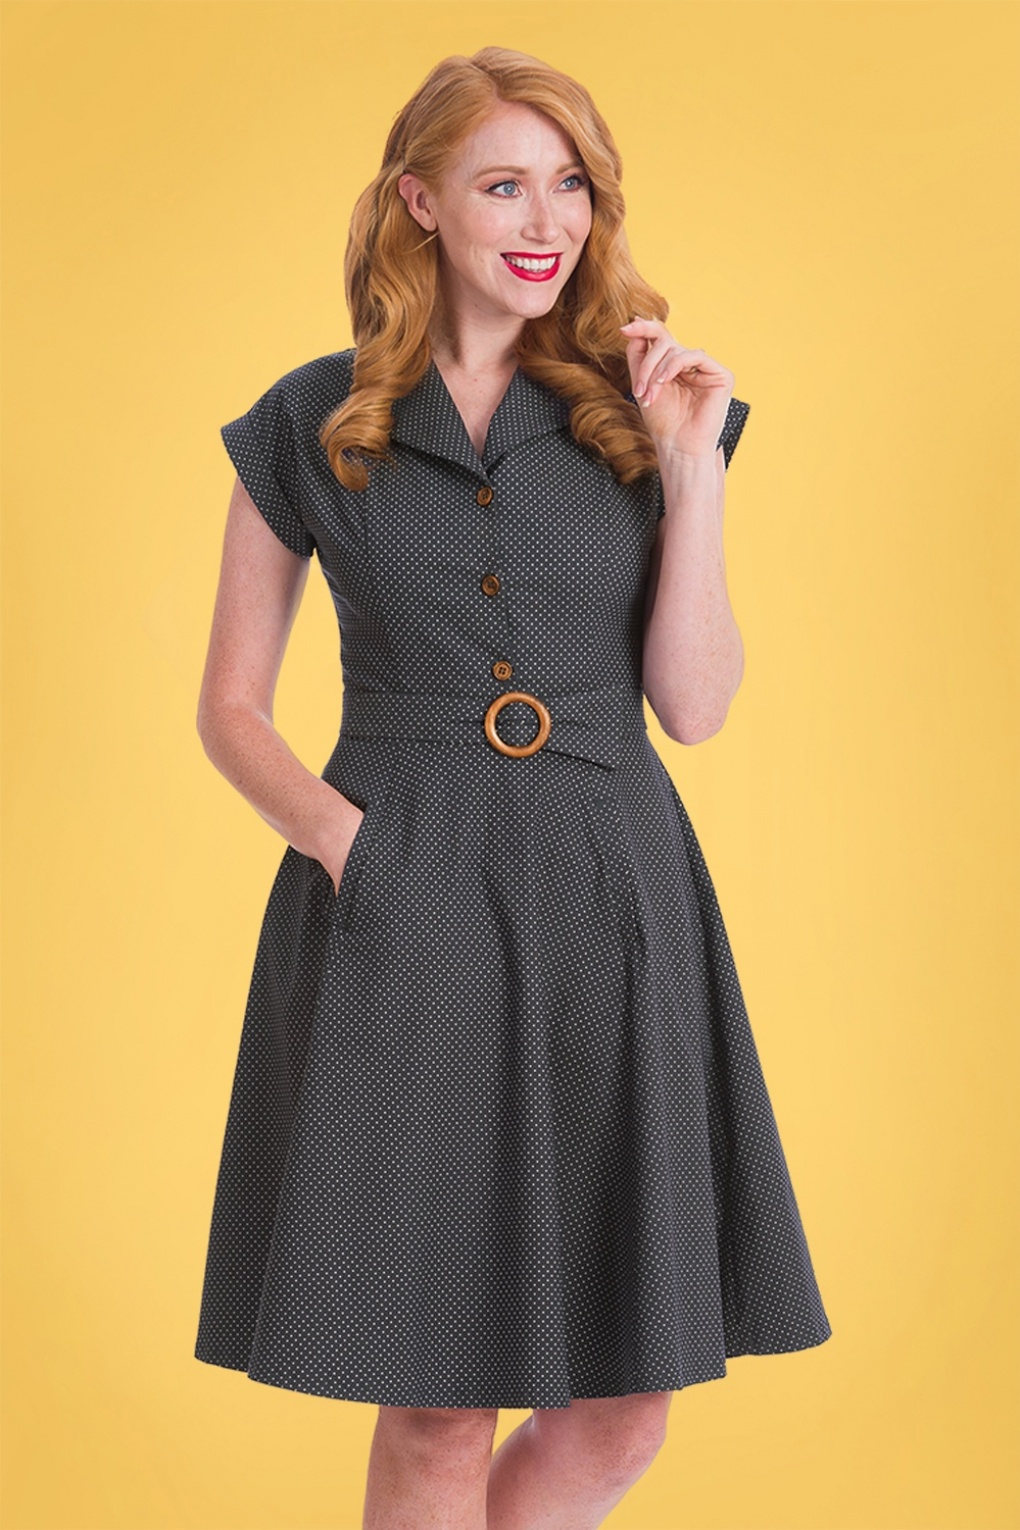 Vintage Shirtwaist Dress History 40s Spot Perfection Fit and Flare Swing Dress in Navy £24.95 AT vintagedancer.com